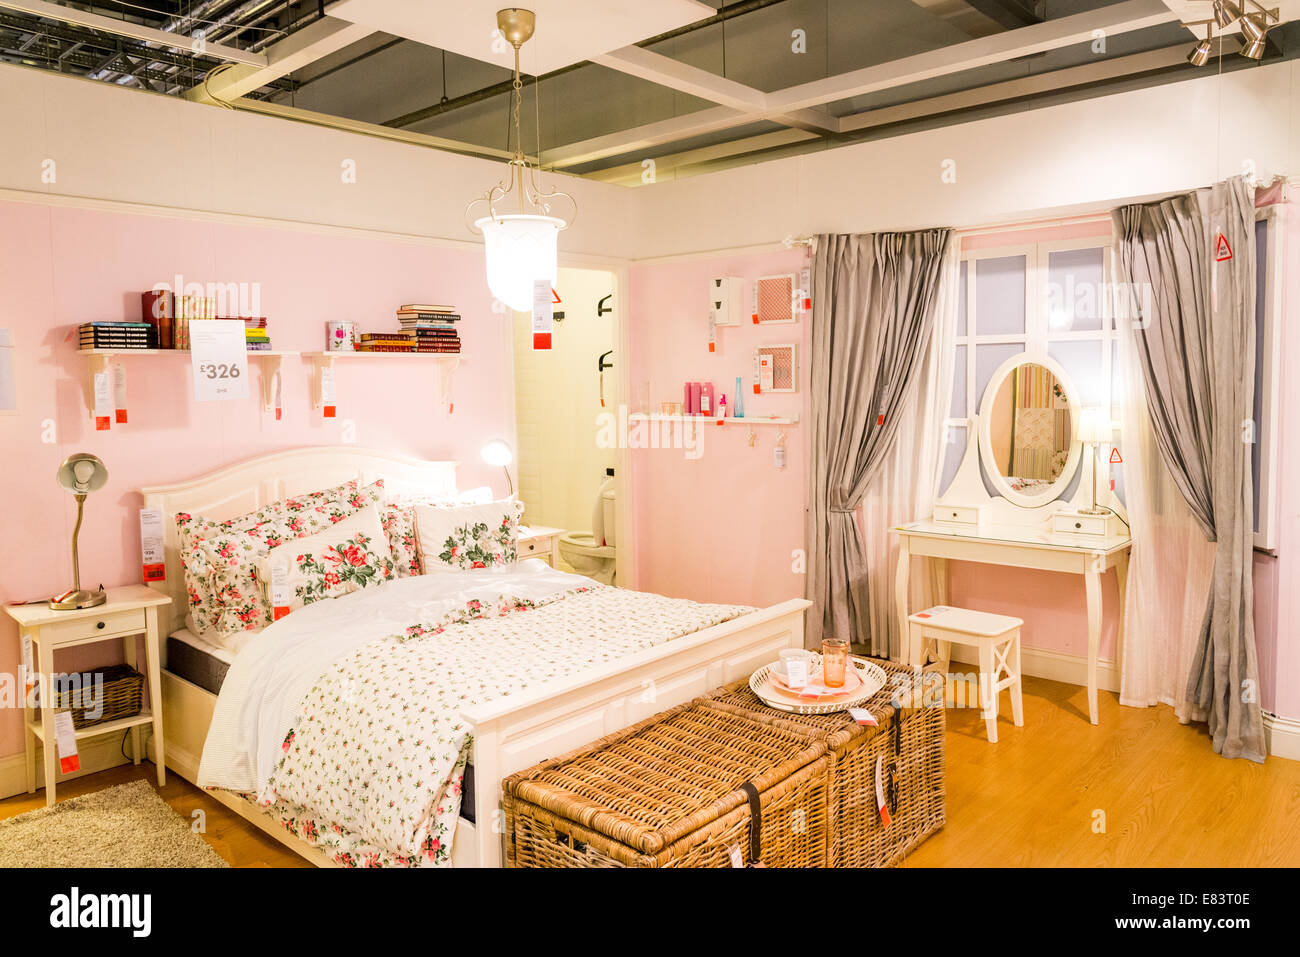 display bedroom in ikea london england uk stock photo 73843406